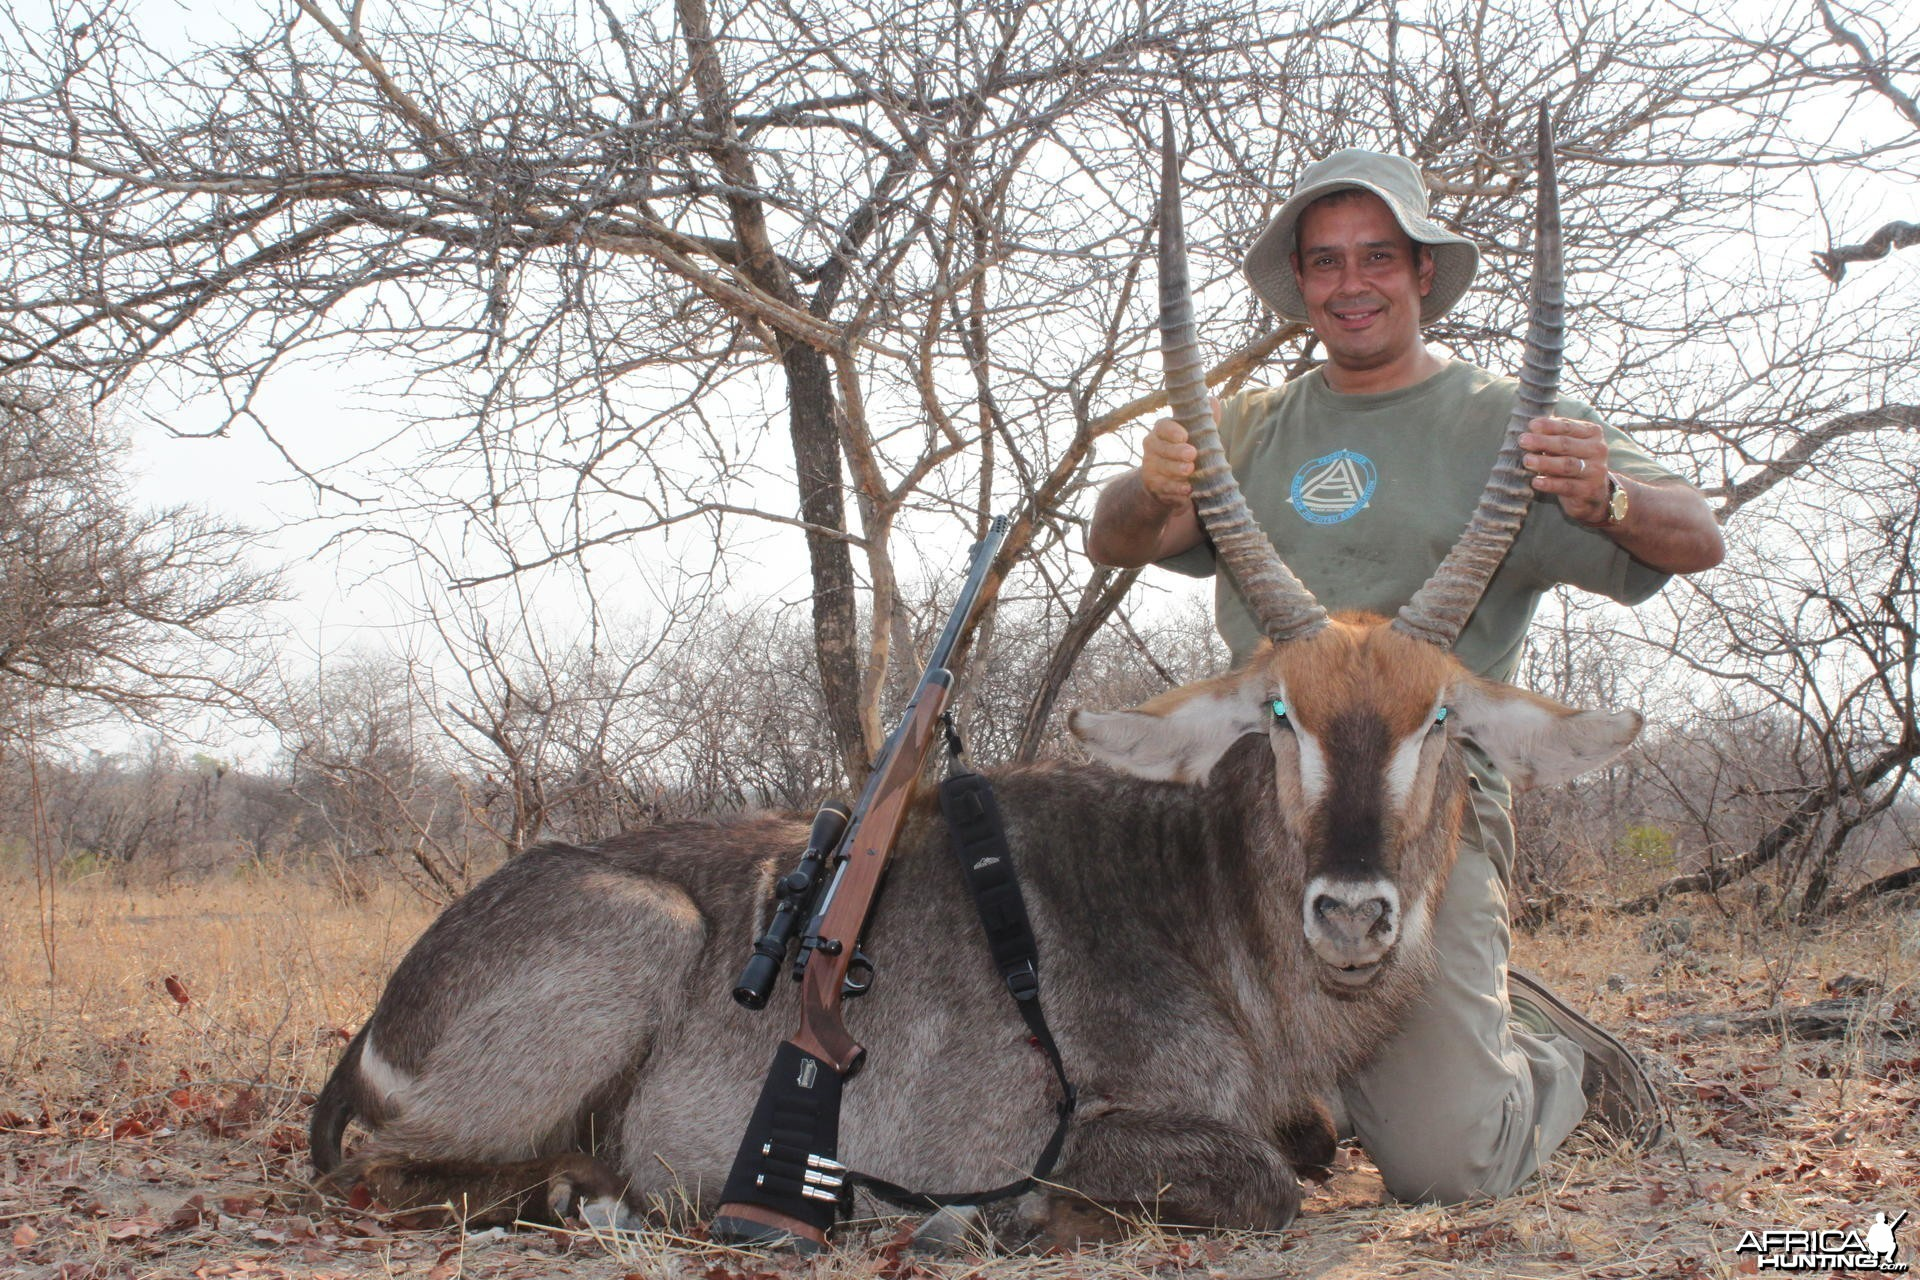 Waterbuck hunted in Zimbabwe